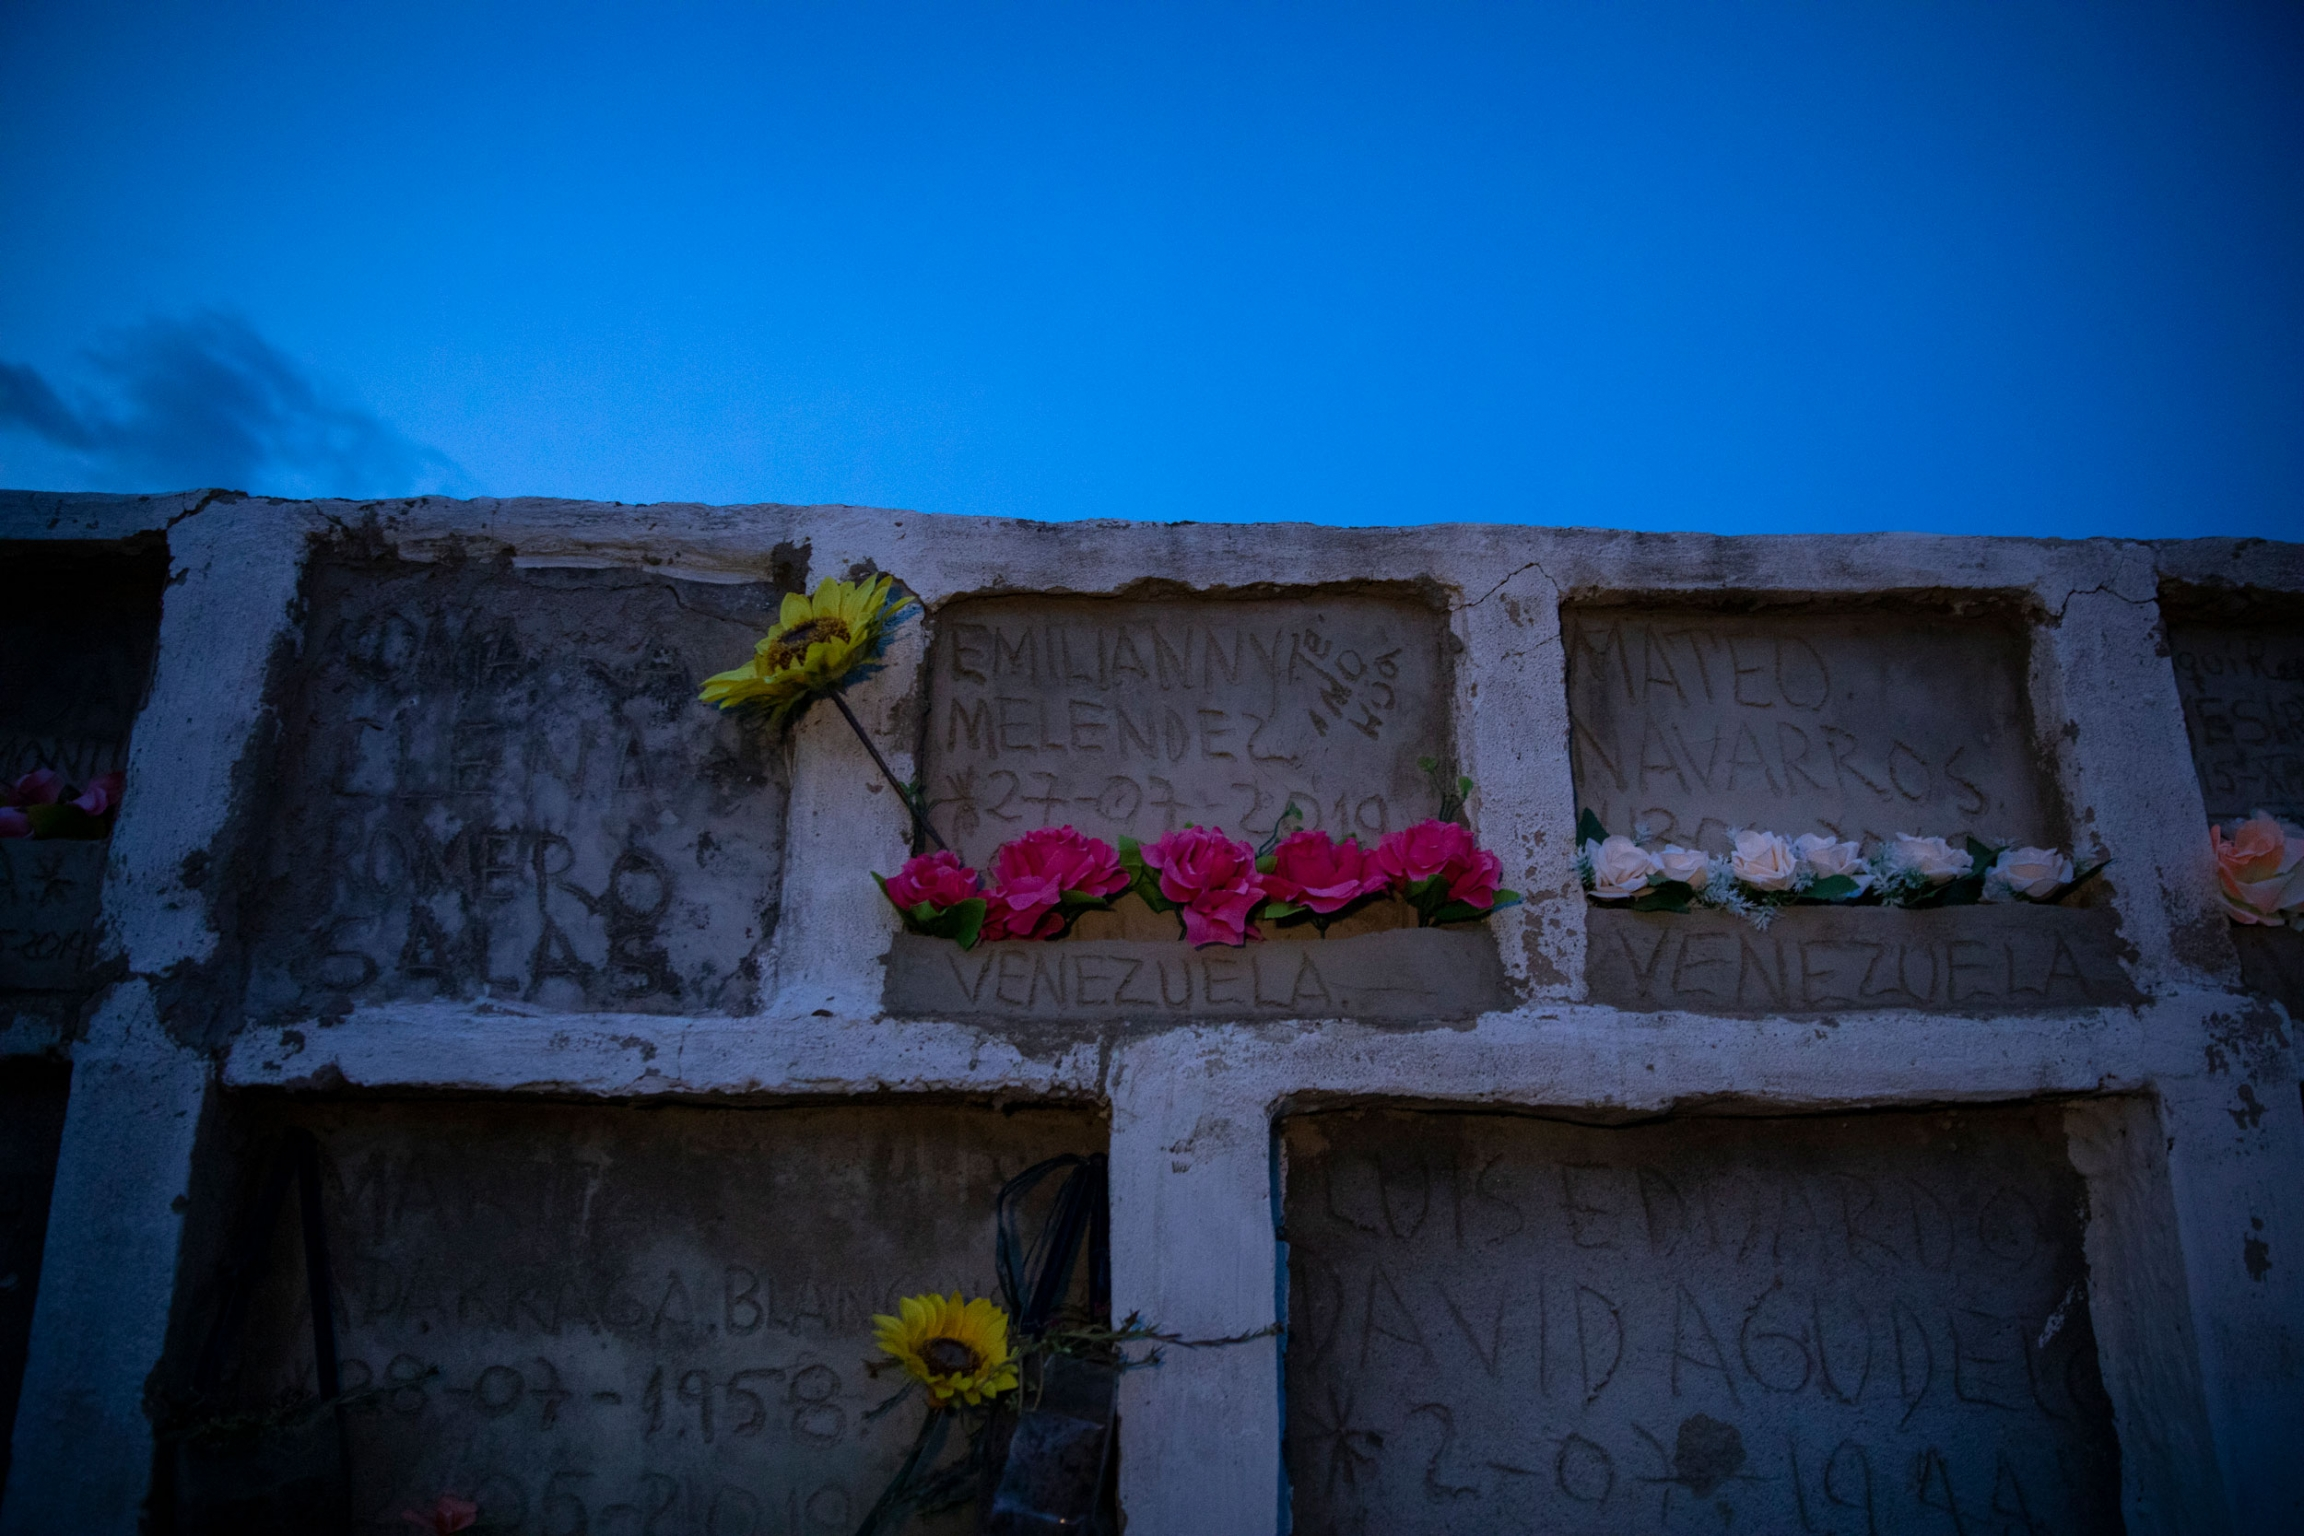 Two rows of graves are shown stacked on top of each other with several pink and yellow flowers.